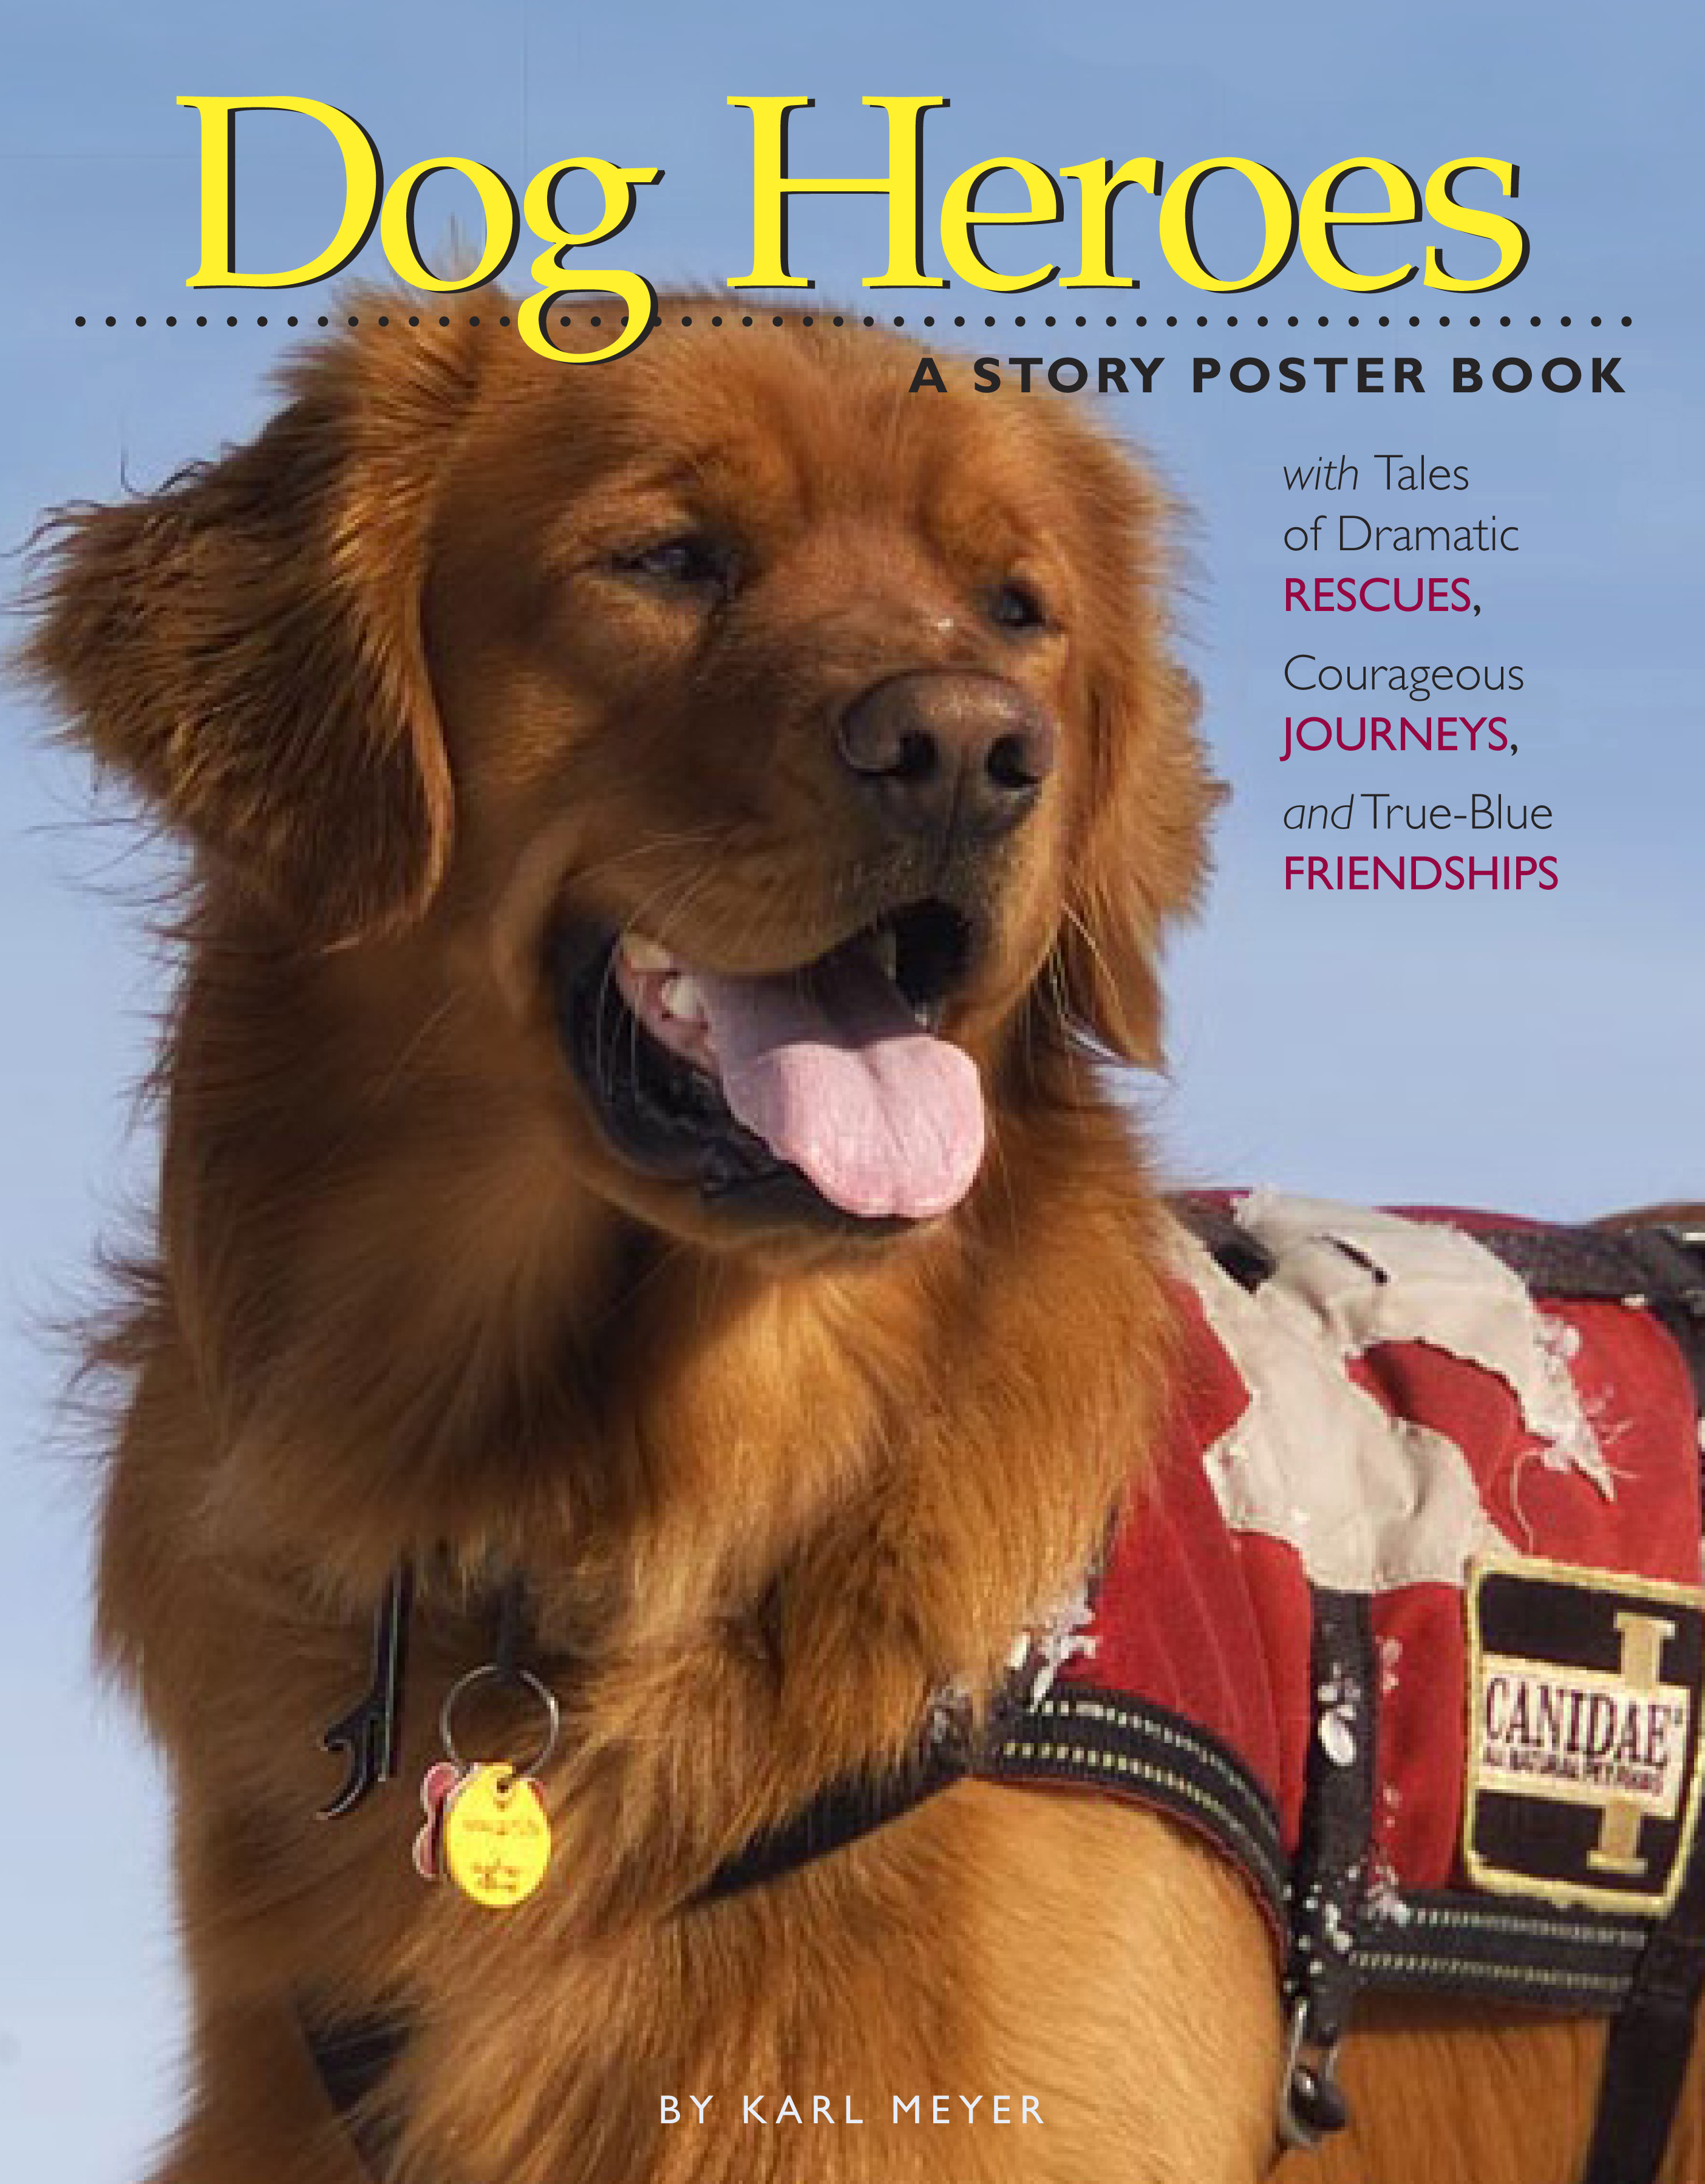 Dog Heroes A Story Poster Book - Karl Meyer